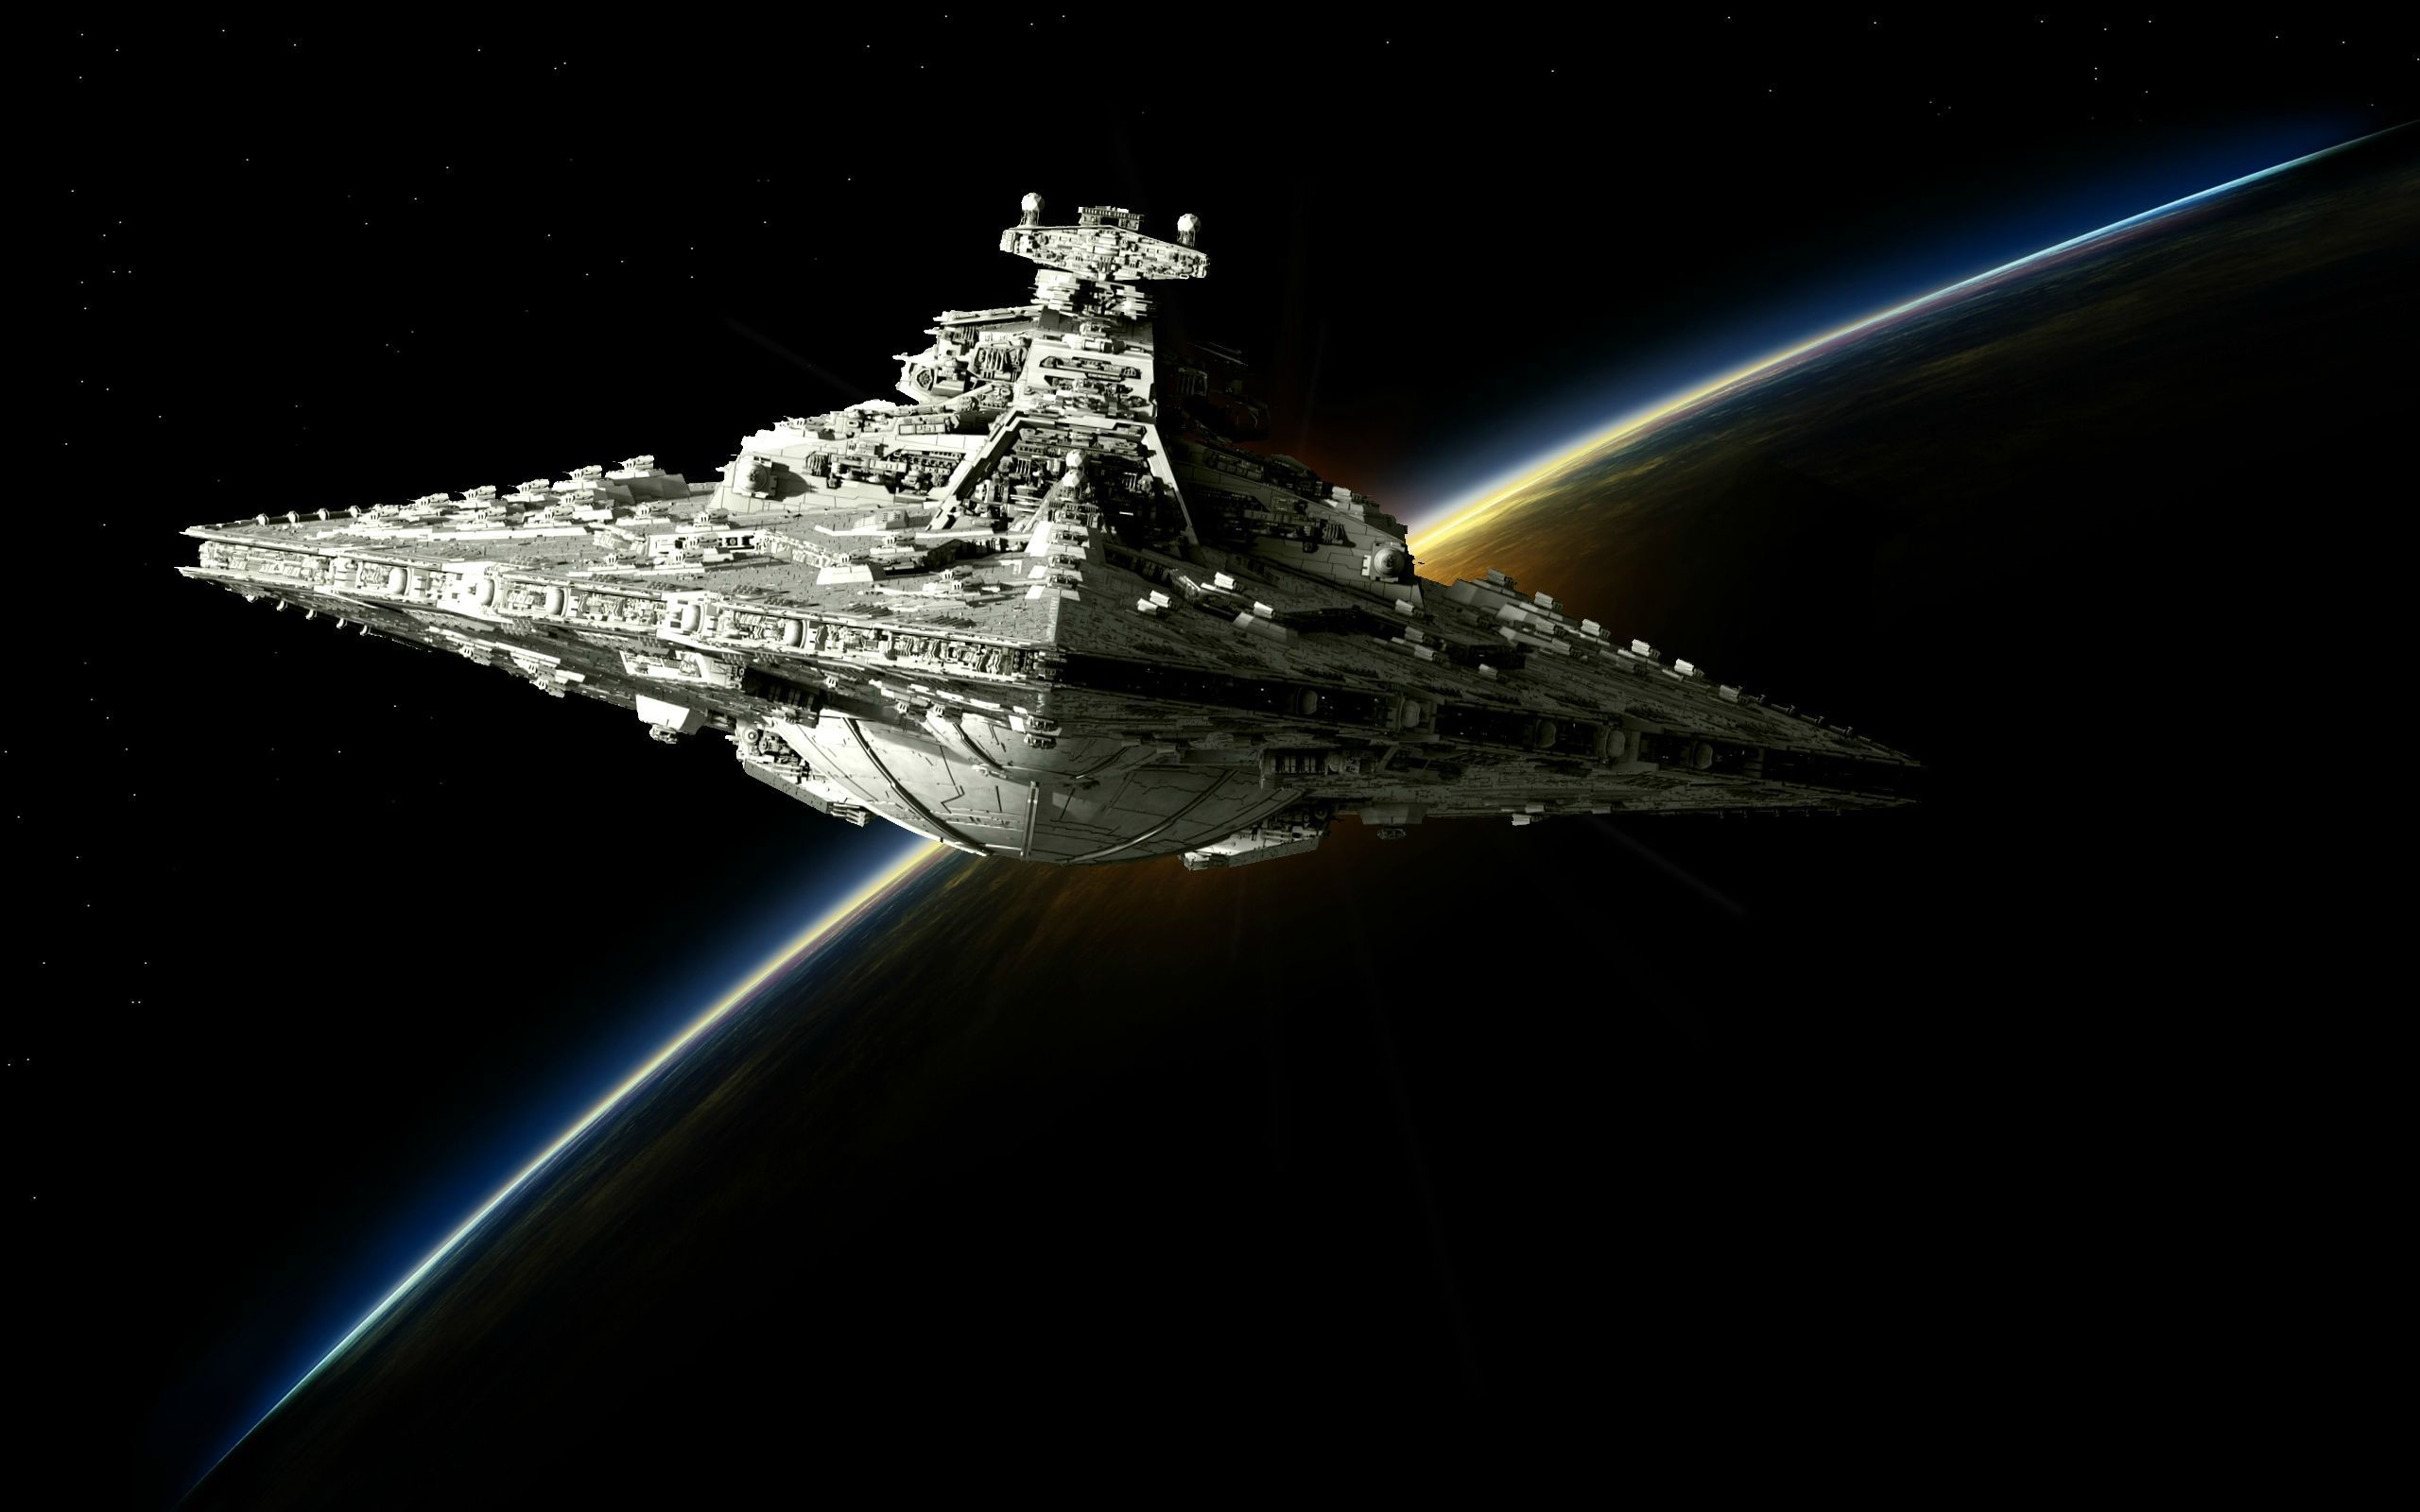 130 Imperial Star Destroyer Wallpaper Hd